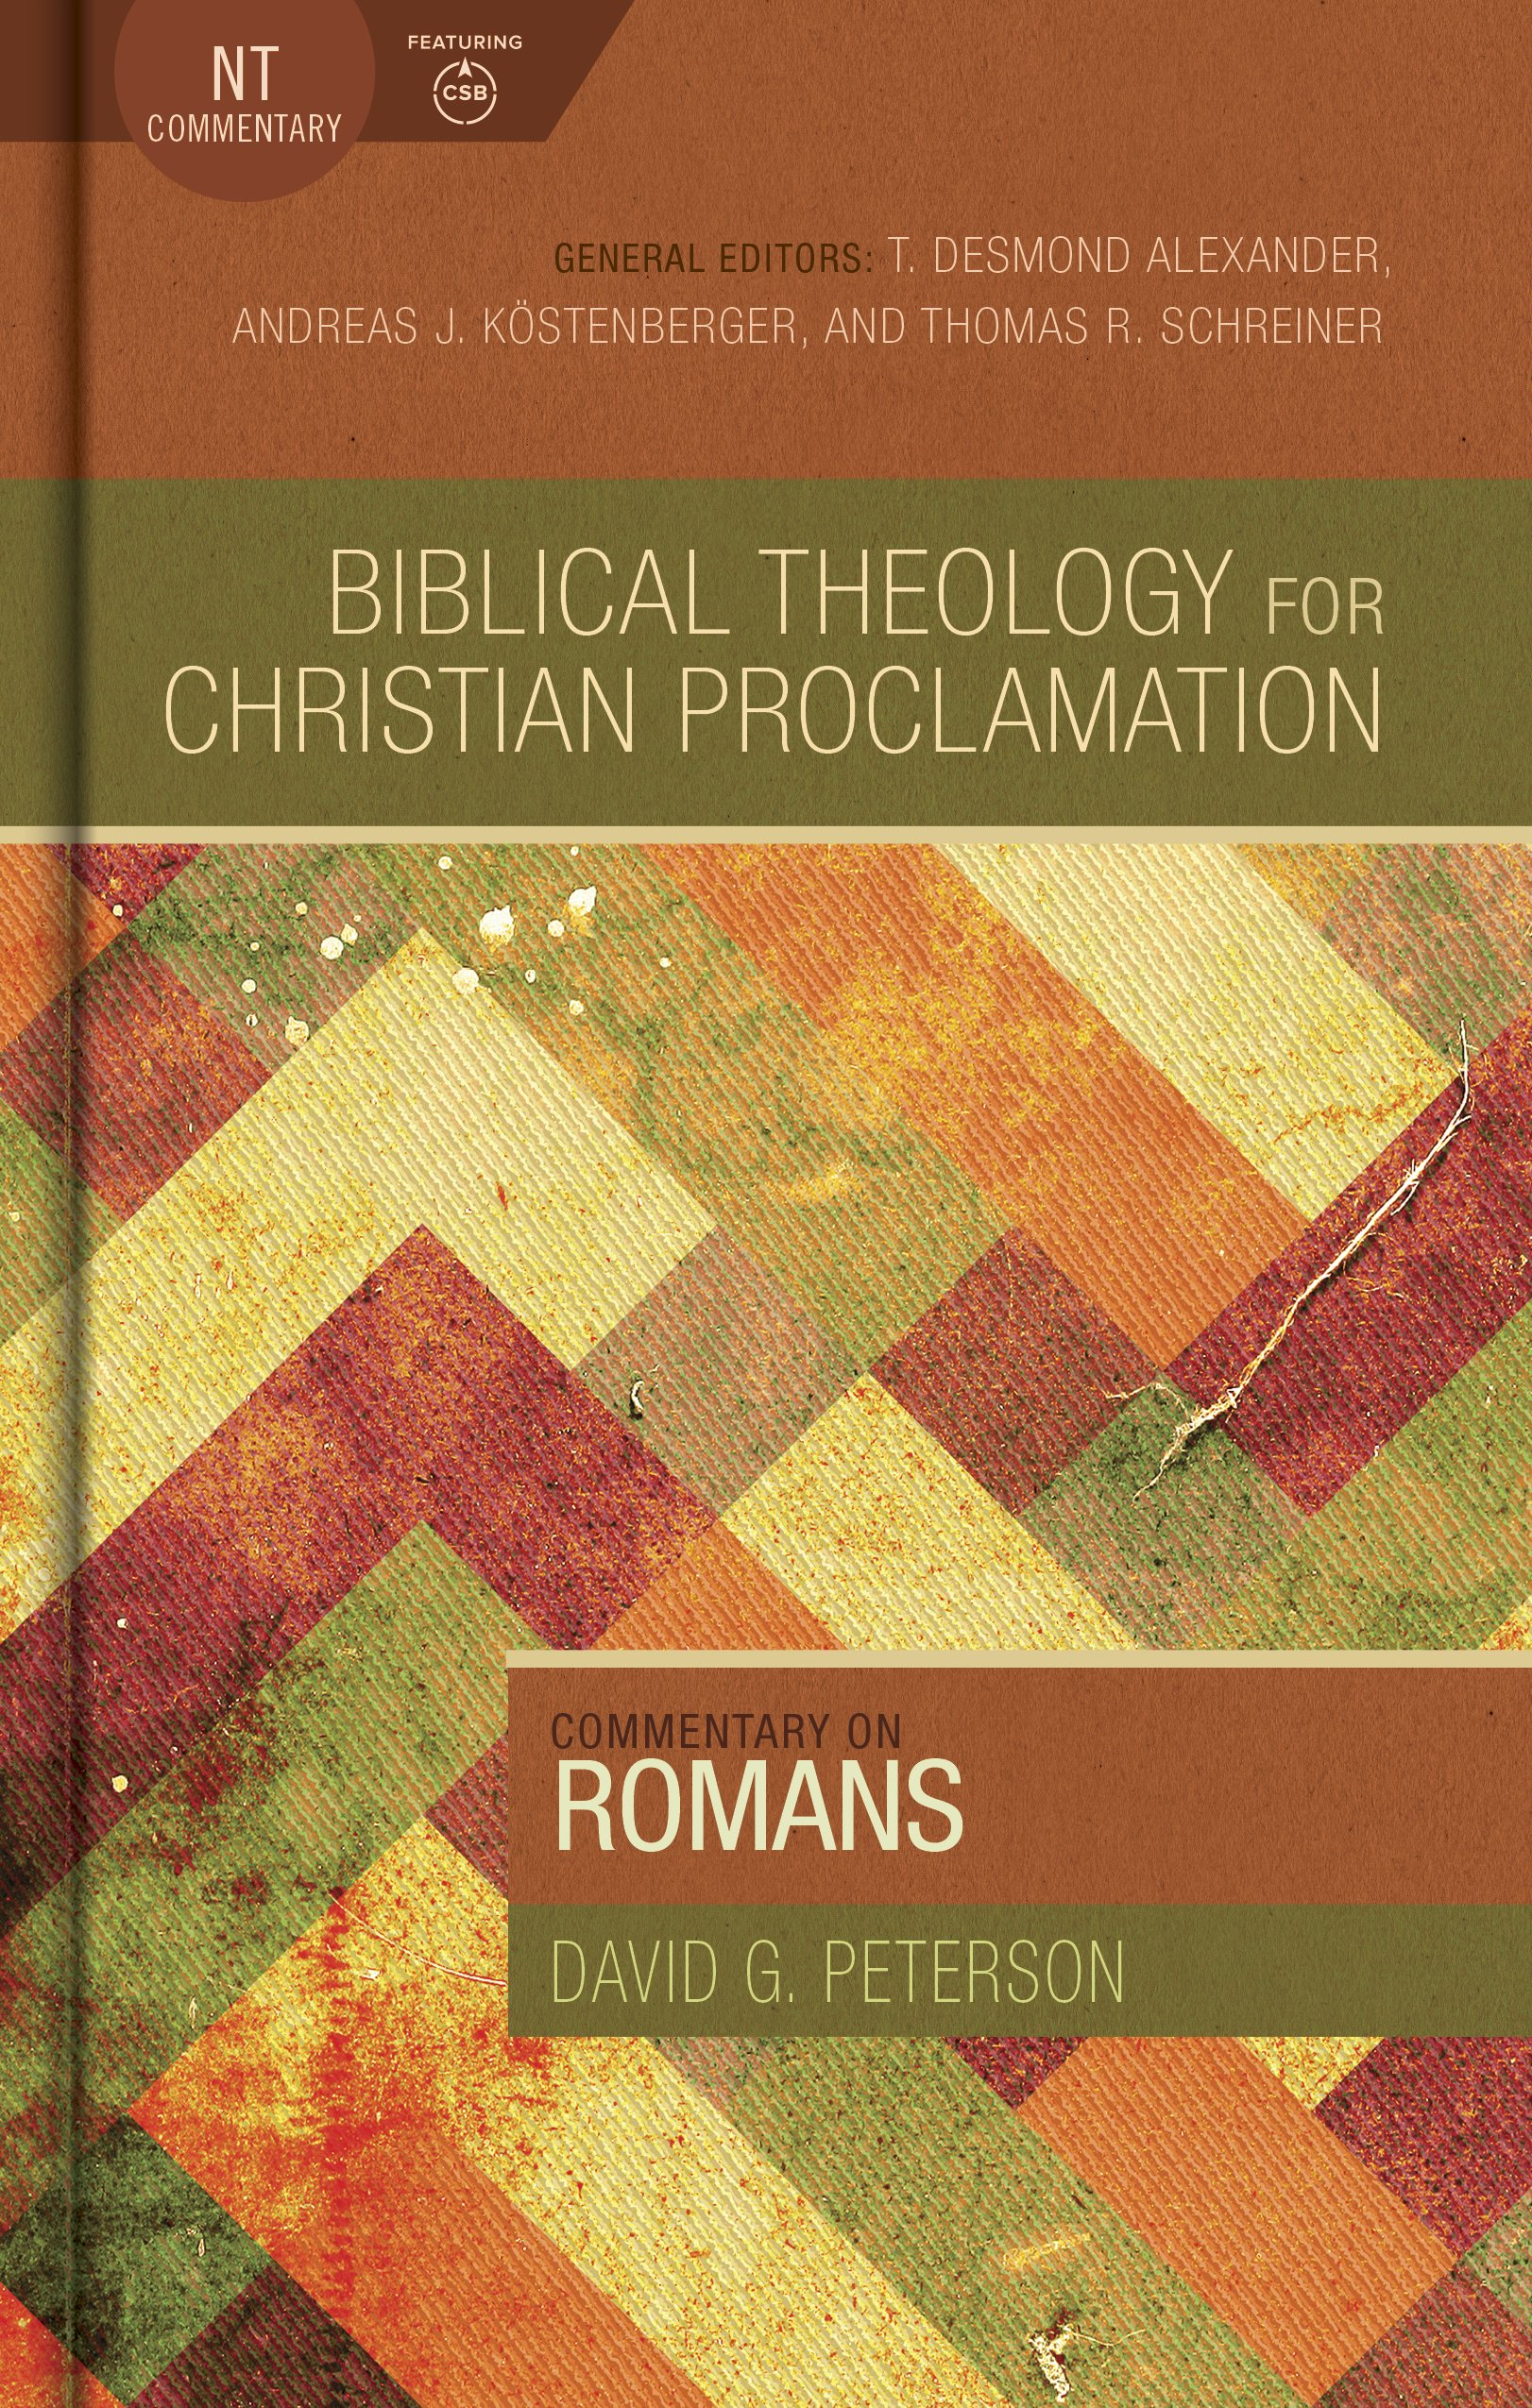 Commentary on romans biblical theology for christian proclamation commentary on romans biblical theology for christian proclamation david g peterson 9780805496222 amazon books sciox Gallery